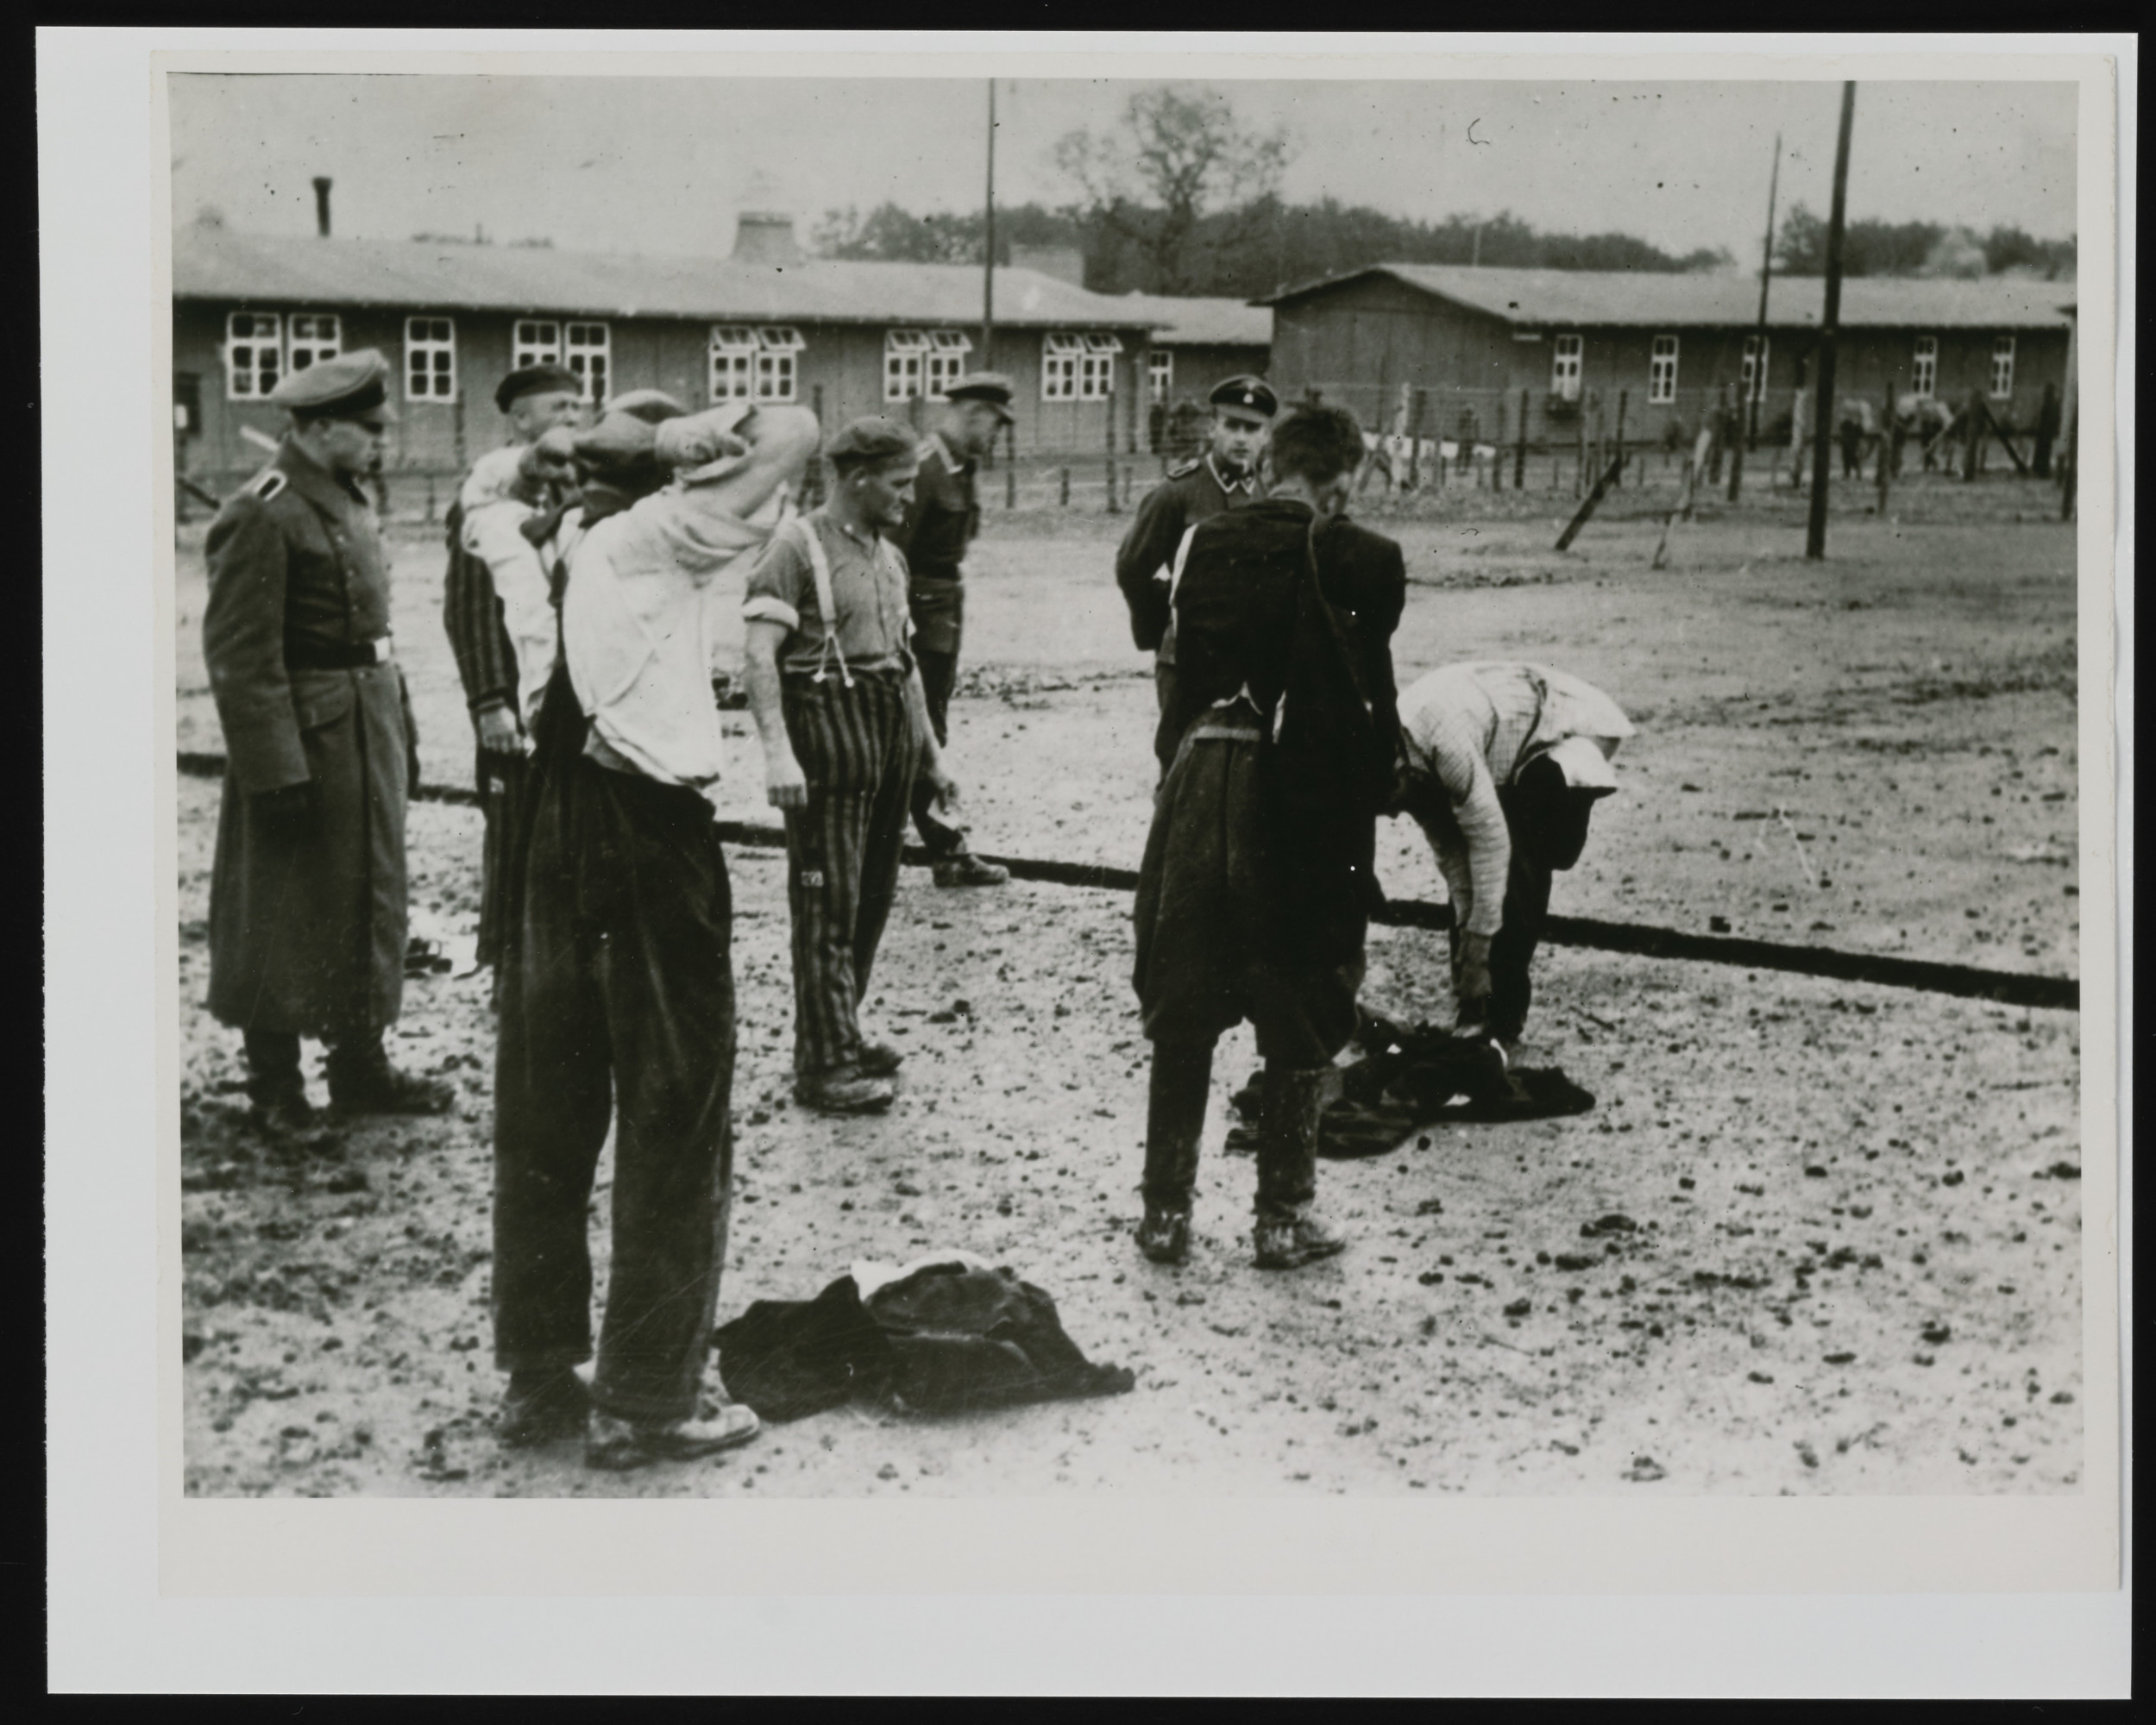 Newly arrived Polish prisoners undressing before they are washed and shaved.